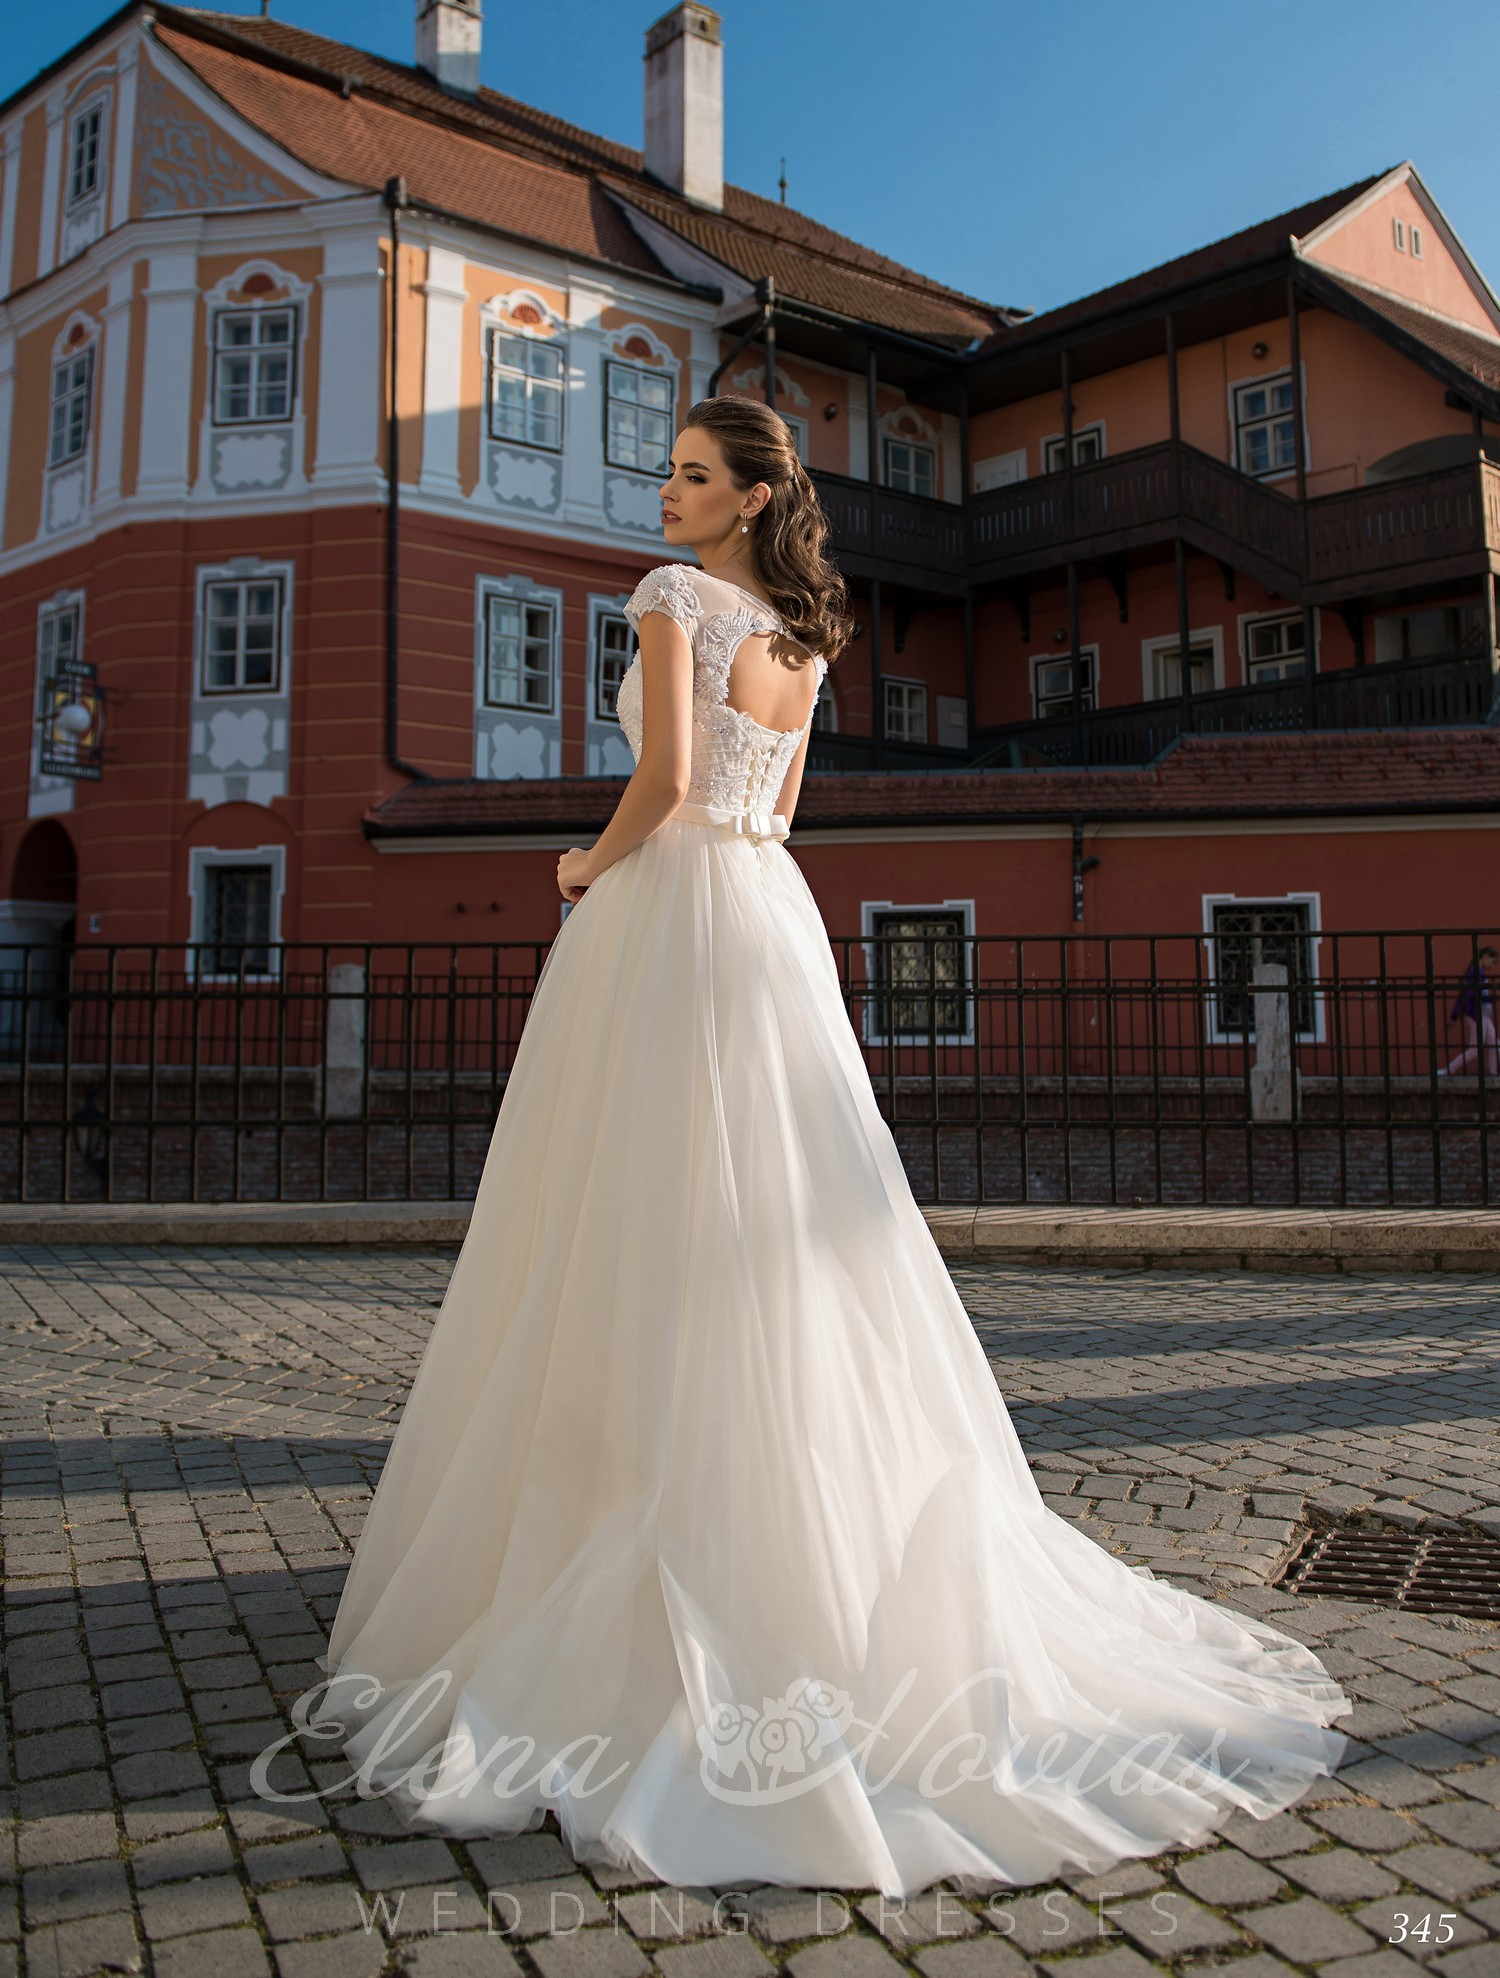 Wedding dress wholesale 345